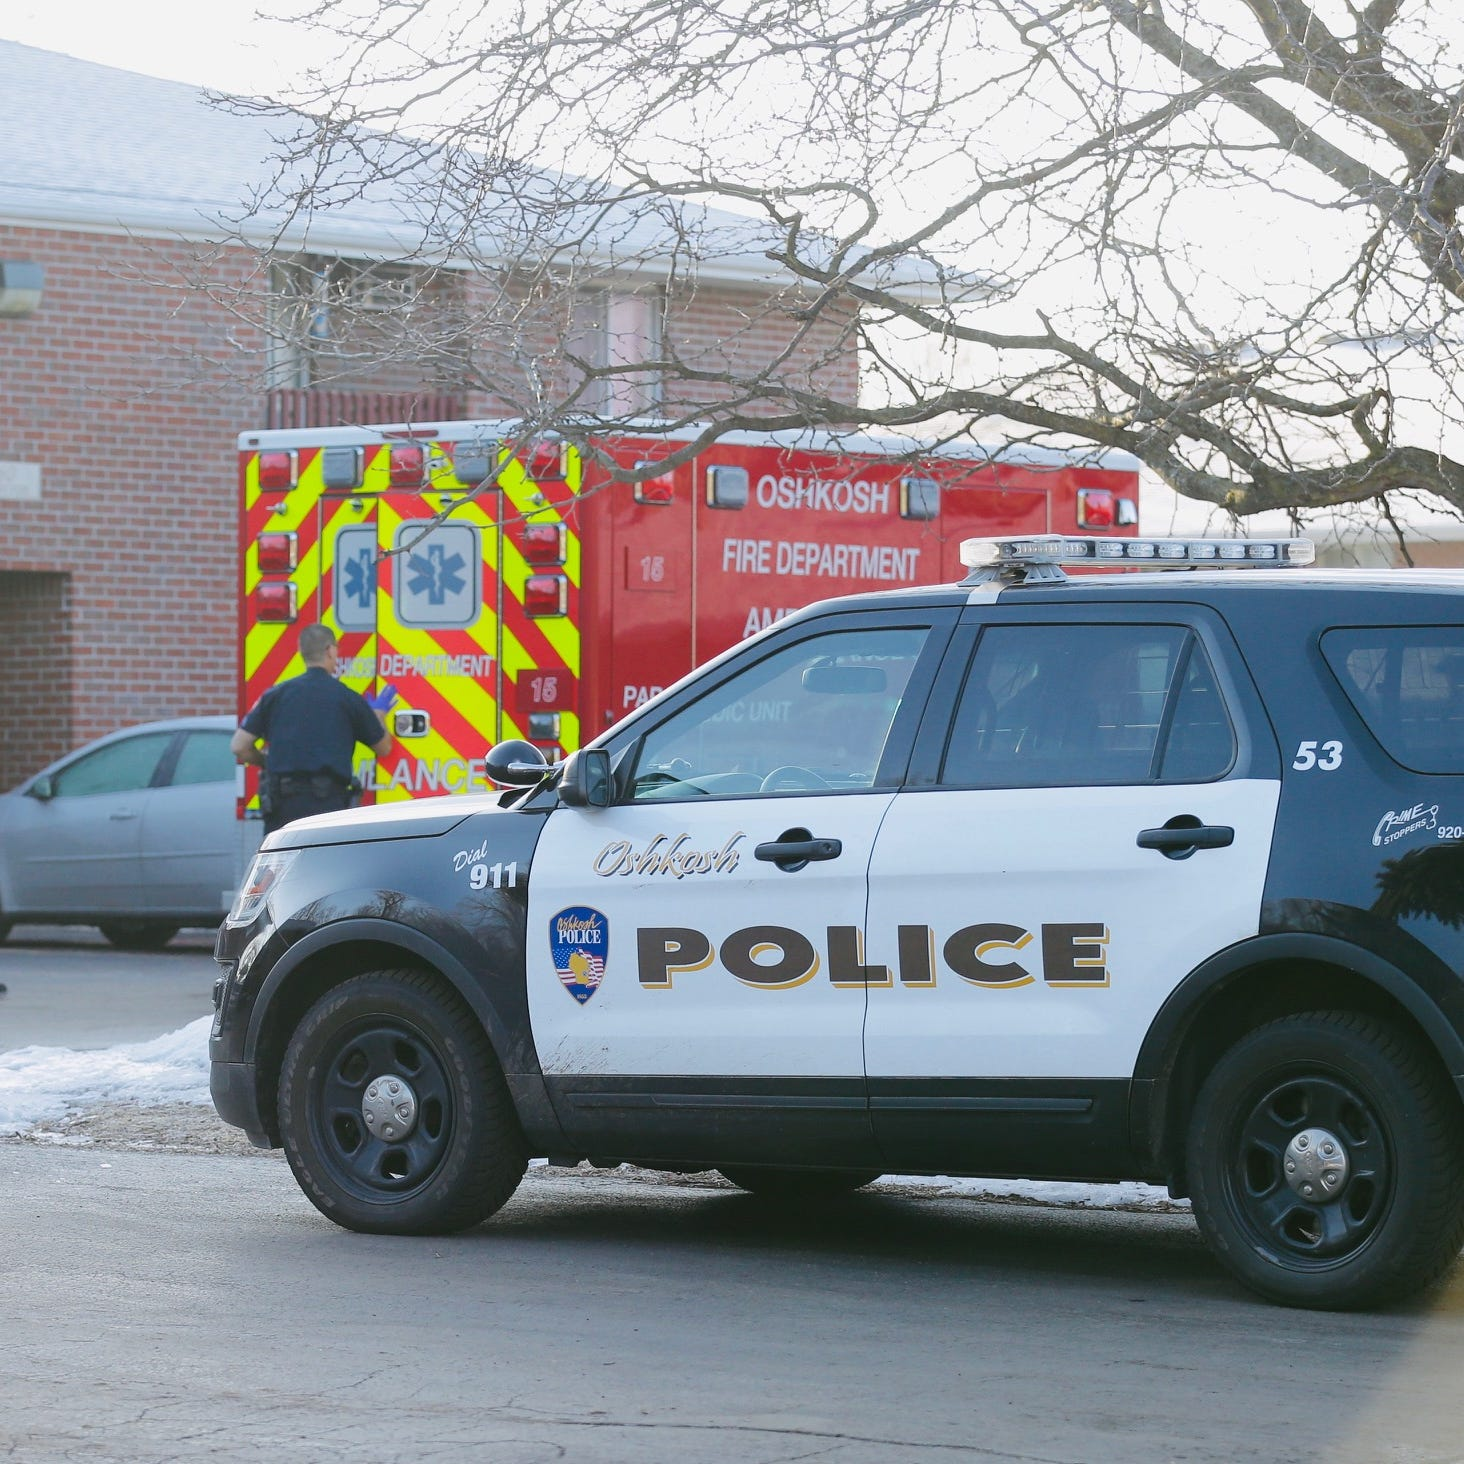 Oshkosh police arrest a 26-year-old man they say accidentally shot himself in the leg